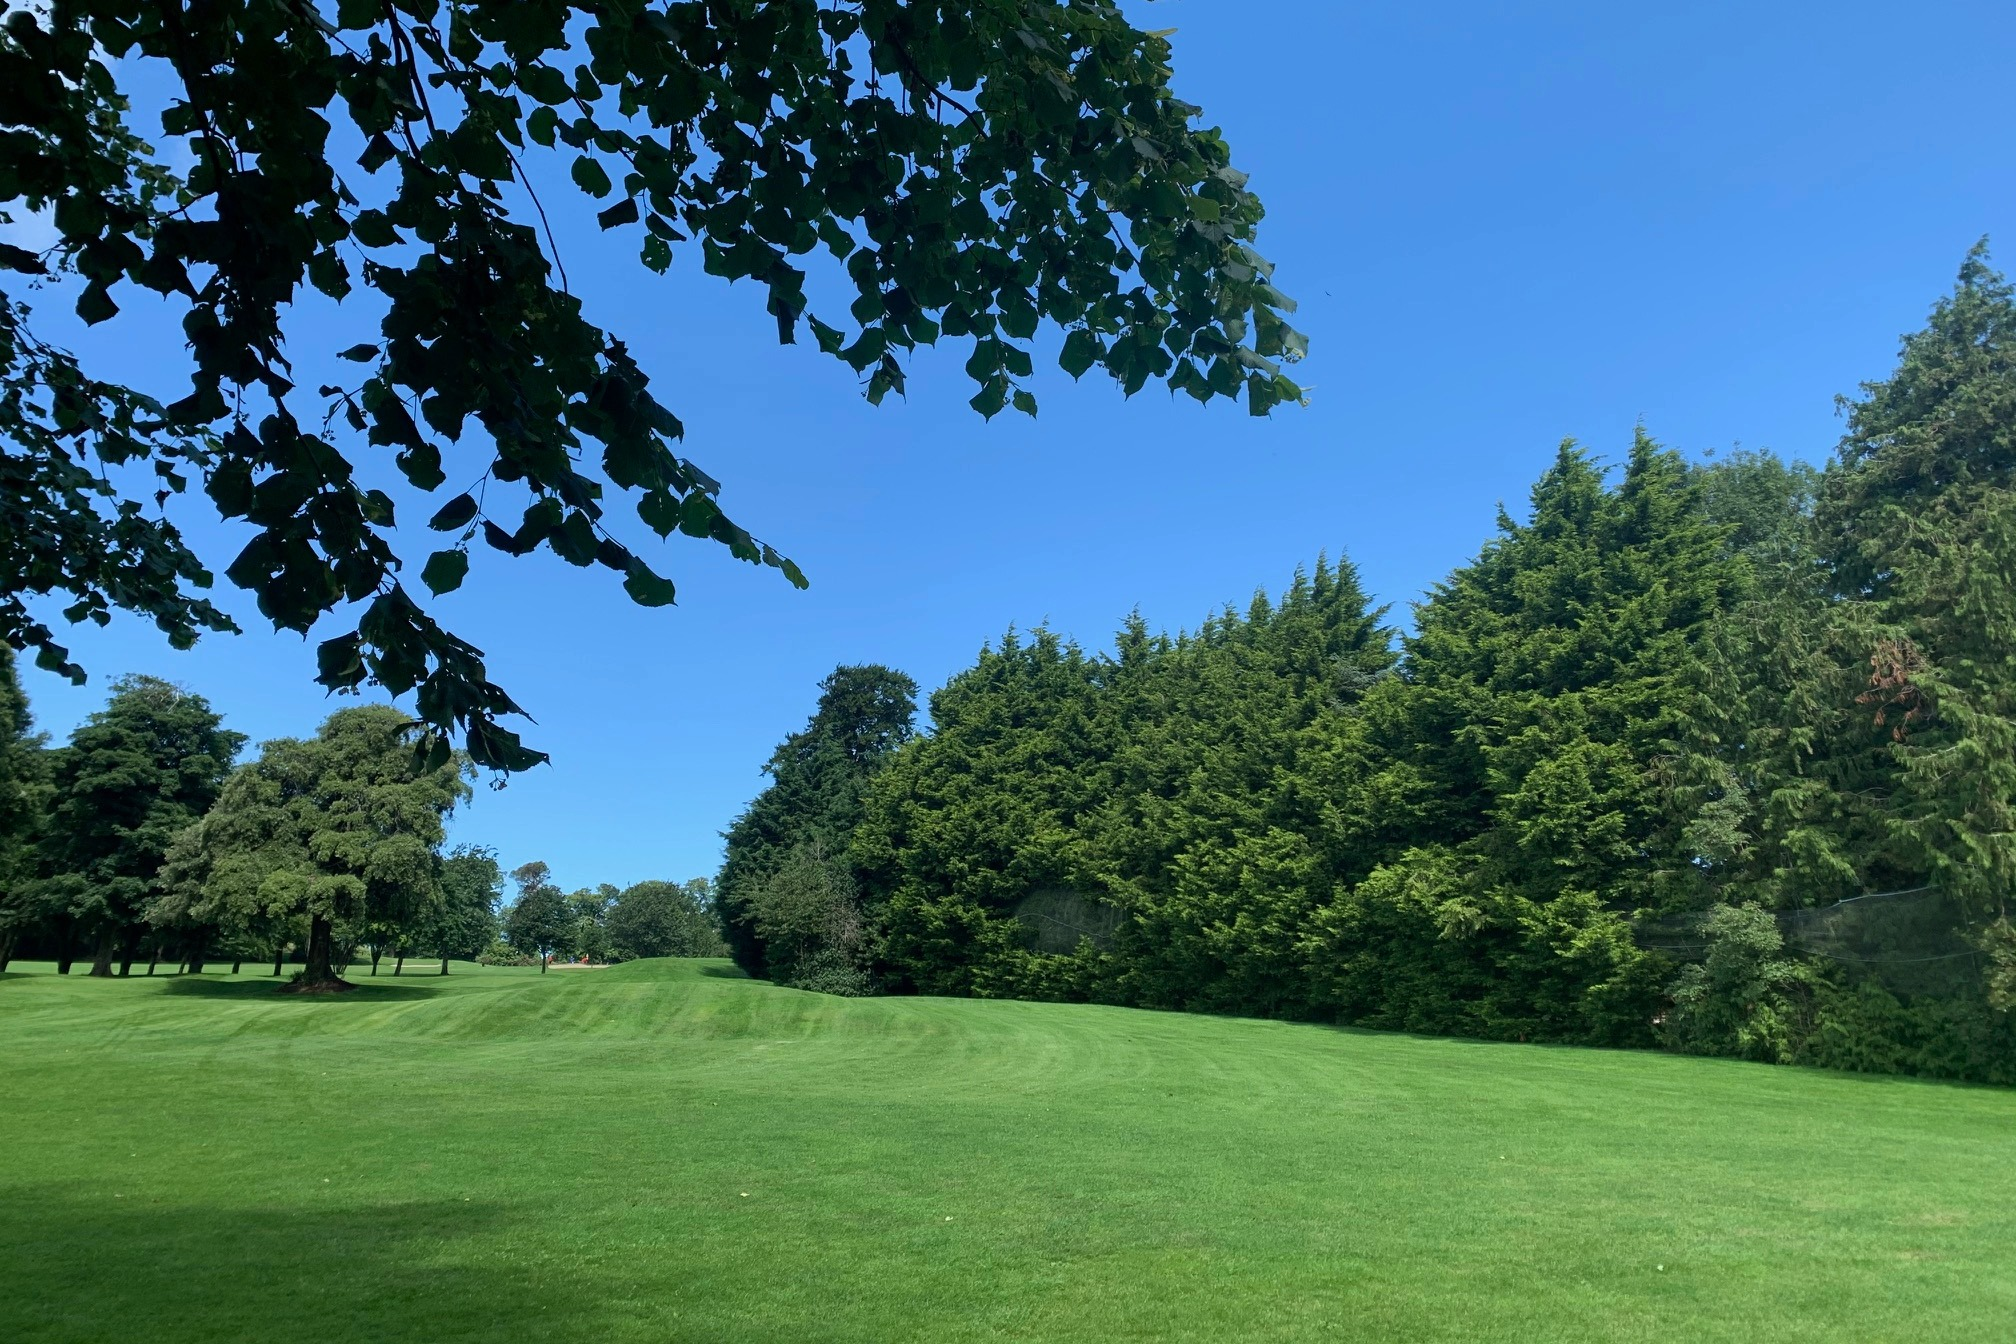 Paul Walsh's photo - Blue Skies - looking up the 9th fairway from the 10th tee